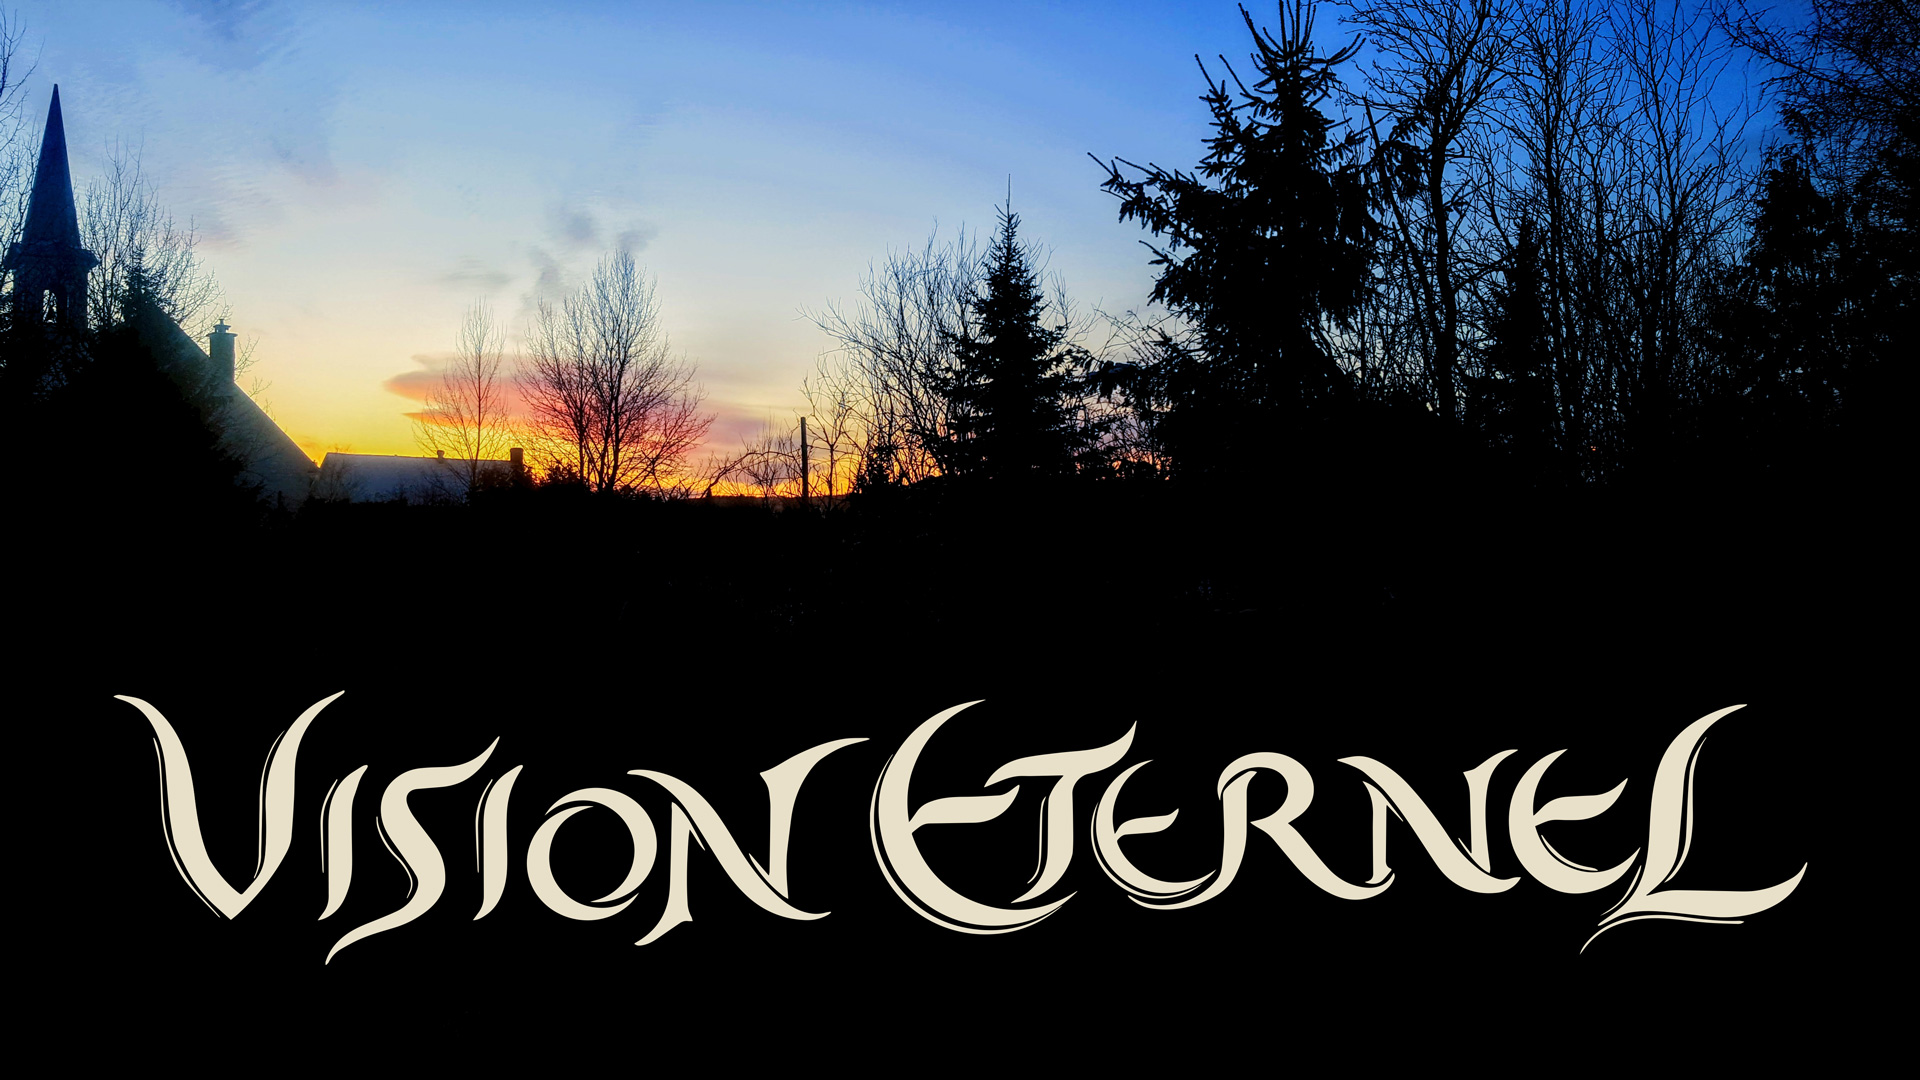 Vision Éternel Announces Upcoming Music Video